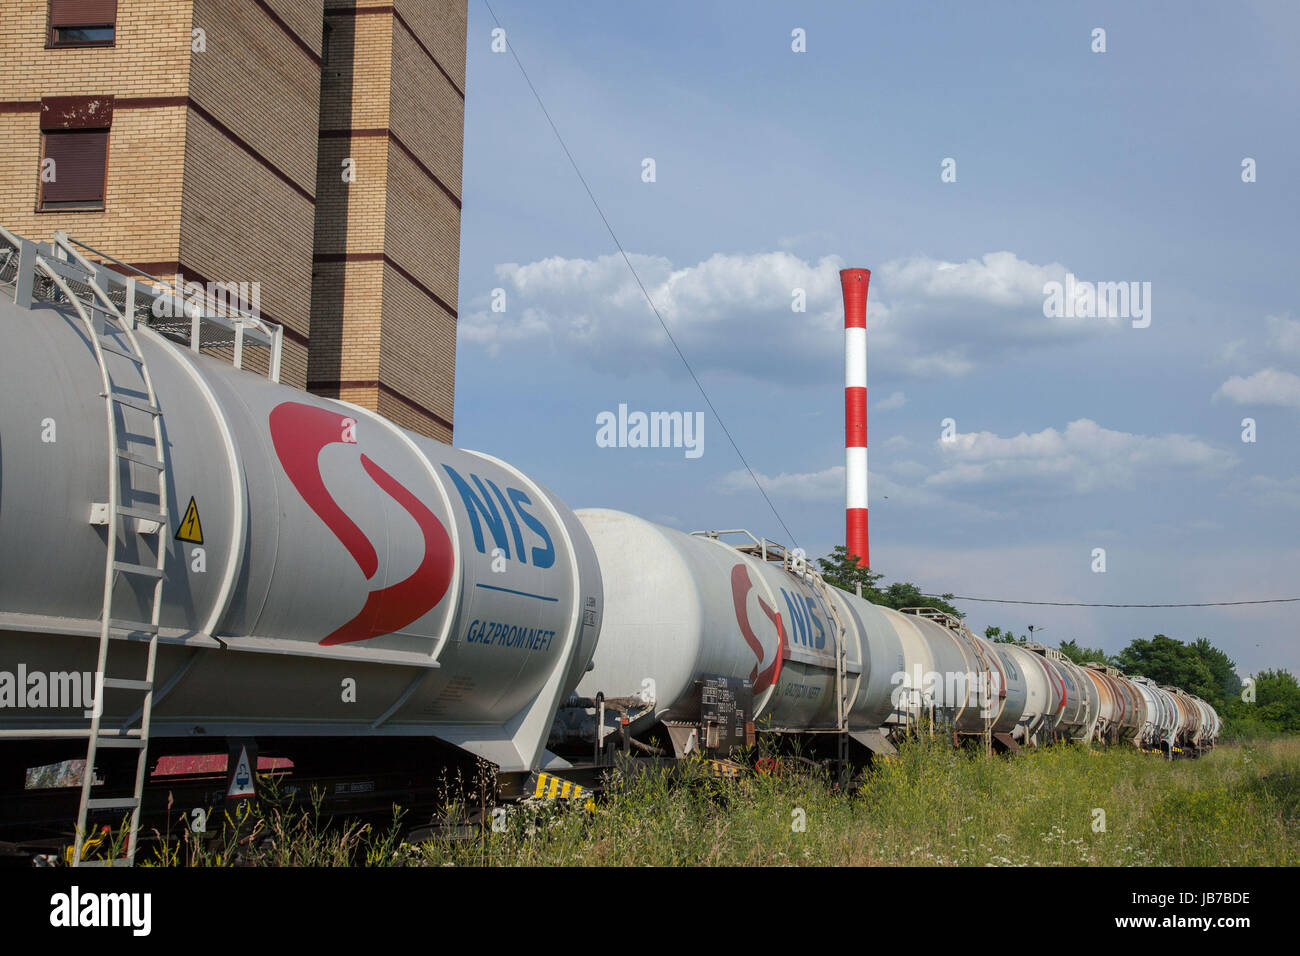 BELGRADE, SERBIA - JUNE 03, 2017: Tank wagons train from Nafta Industria Srbije passing near a factory chimney in Stock Photo